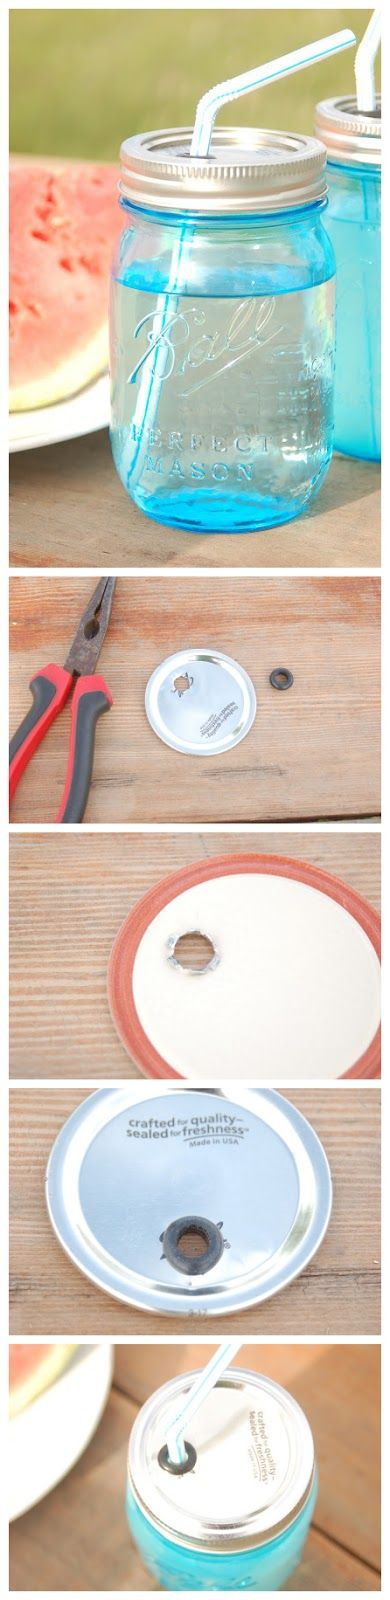 Make Your Own Canning Jar Cup with Straw http://www.theblissfullycontentlife.org/2013/06/make-your-own-portable-ball-canning-jar.html